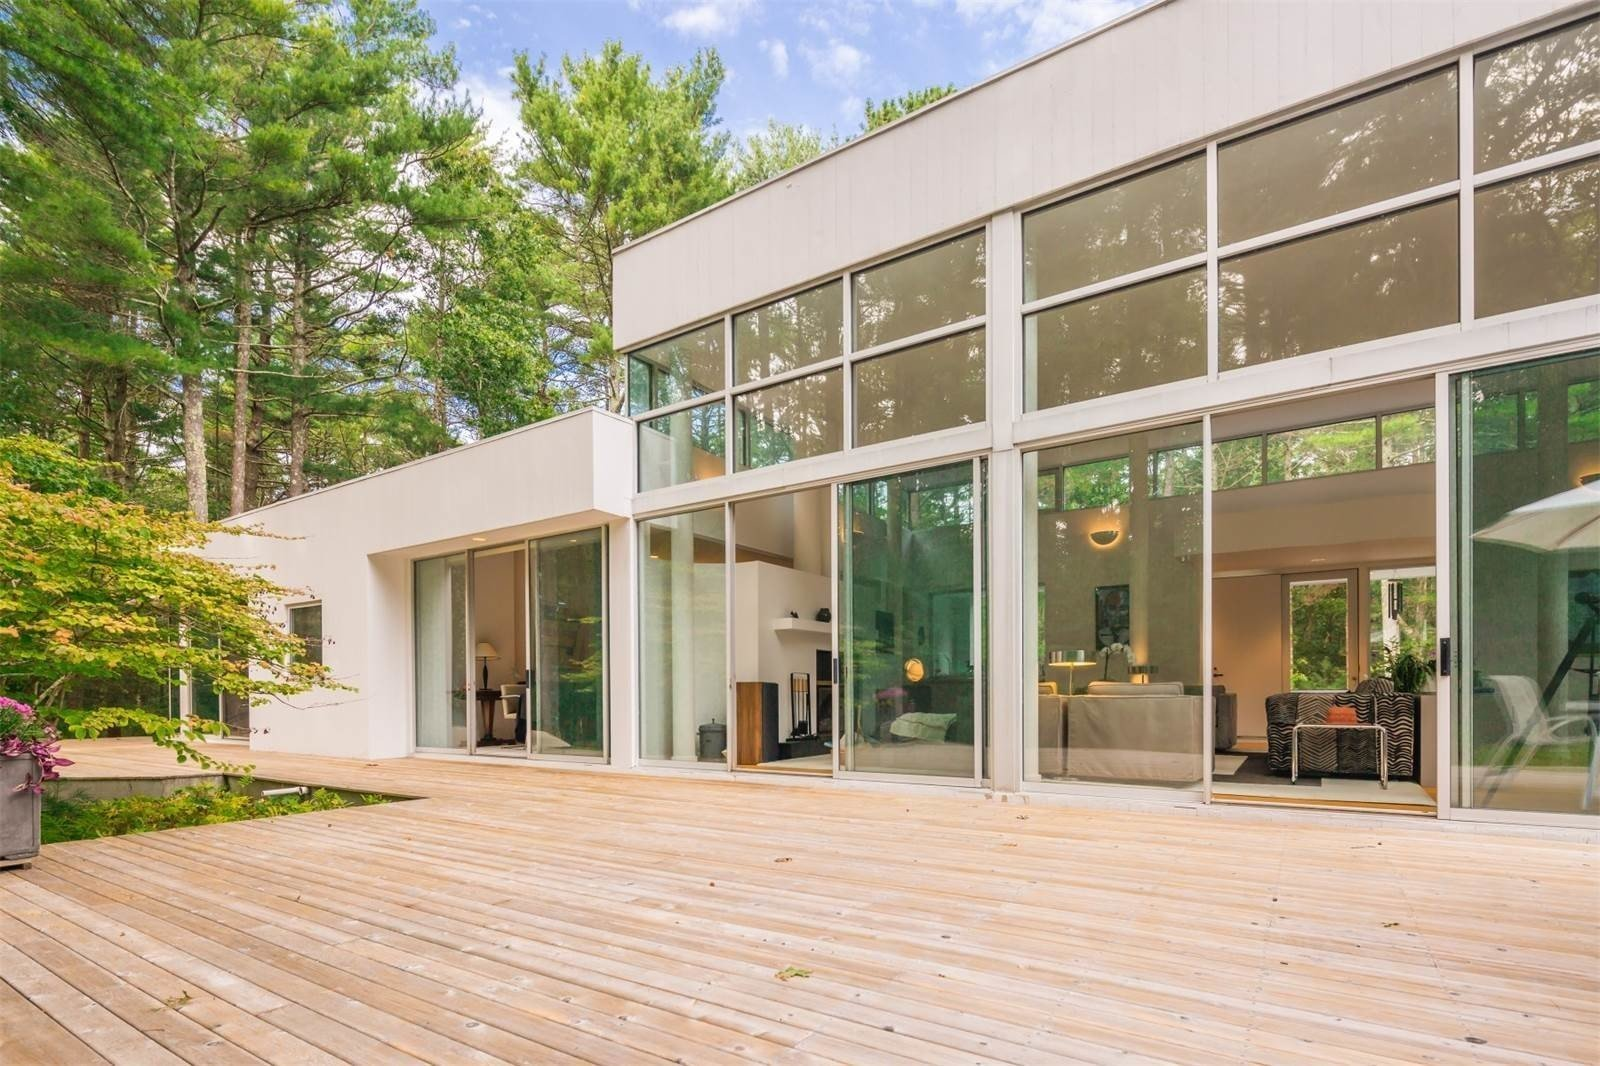 16-foot-high ceilings and dramatic expanses of glass allow light to stream into the open floor plan year-round.  Photo 8 of 11 in Spotted: 10 Modern Homes in the Hamptons